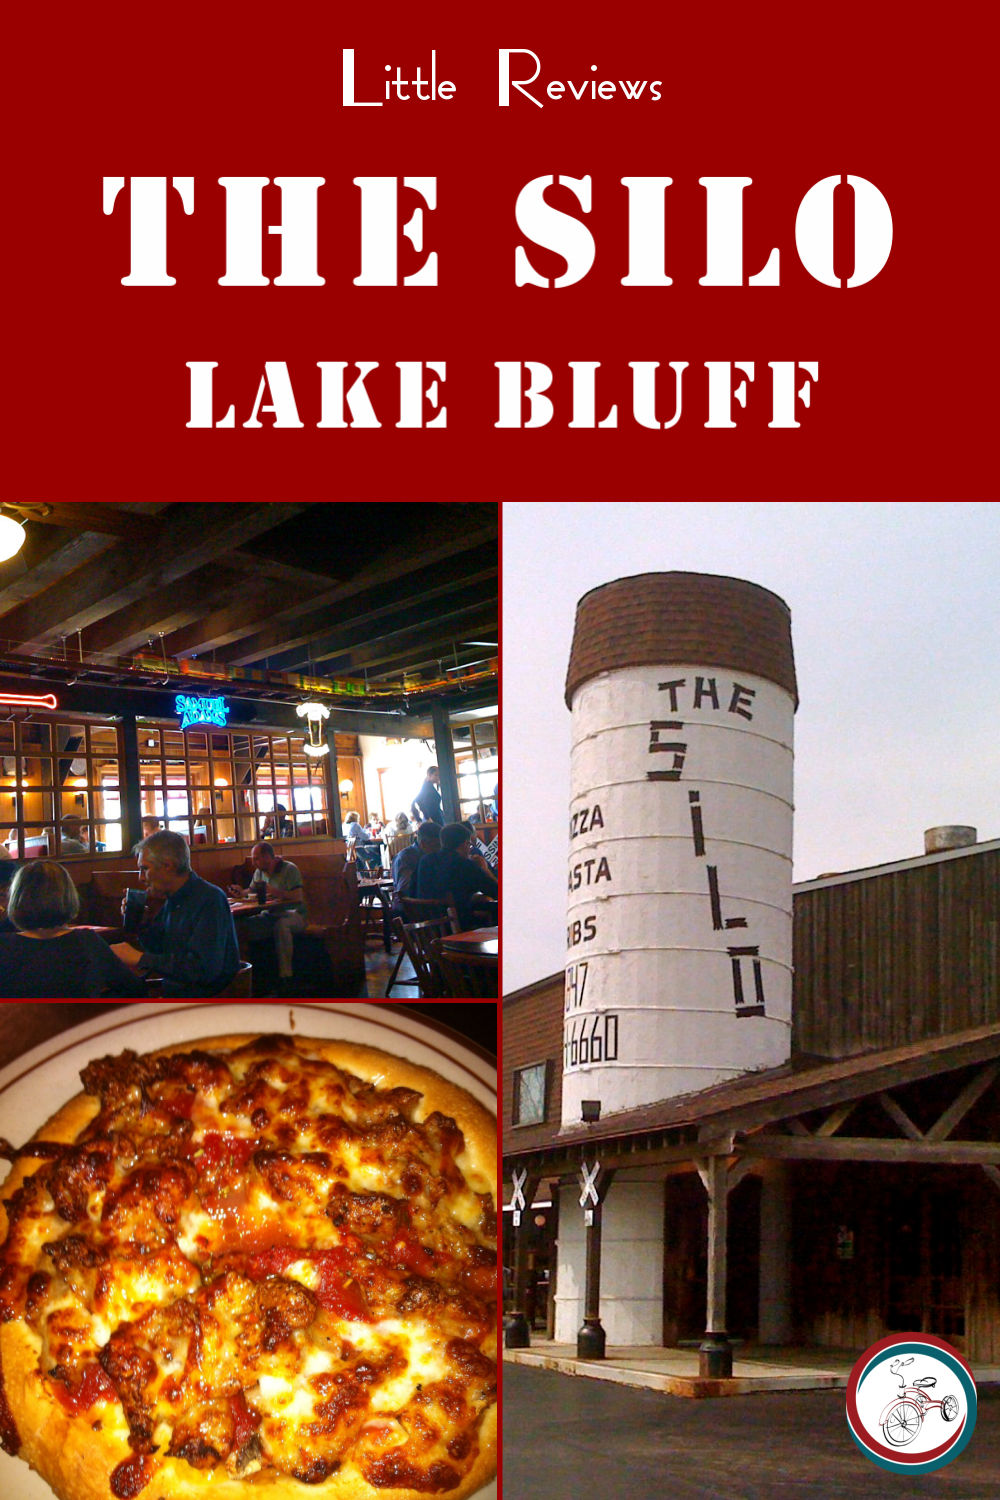 Little Reviews: Good Feed at The Silo